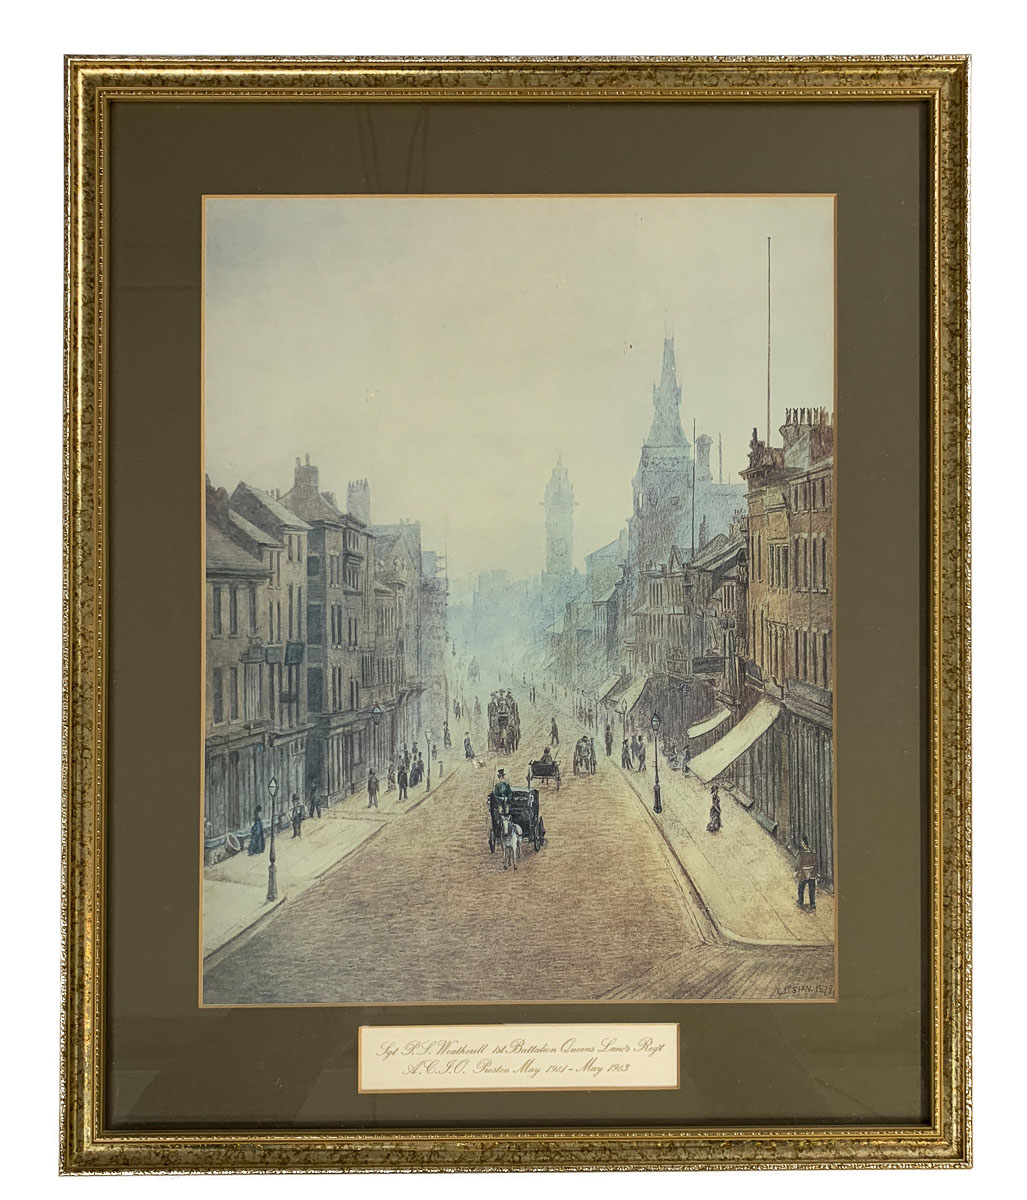 Original print, with mount and framing.